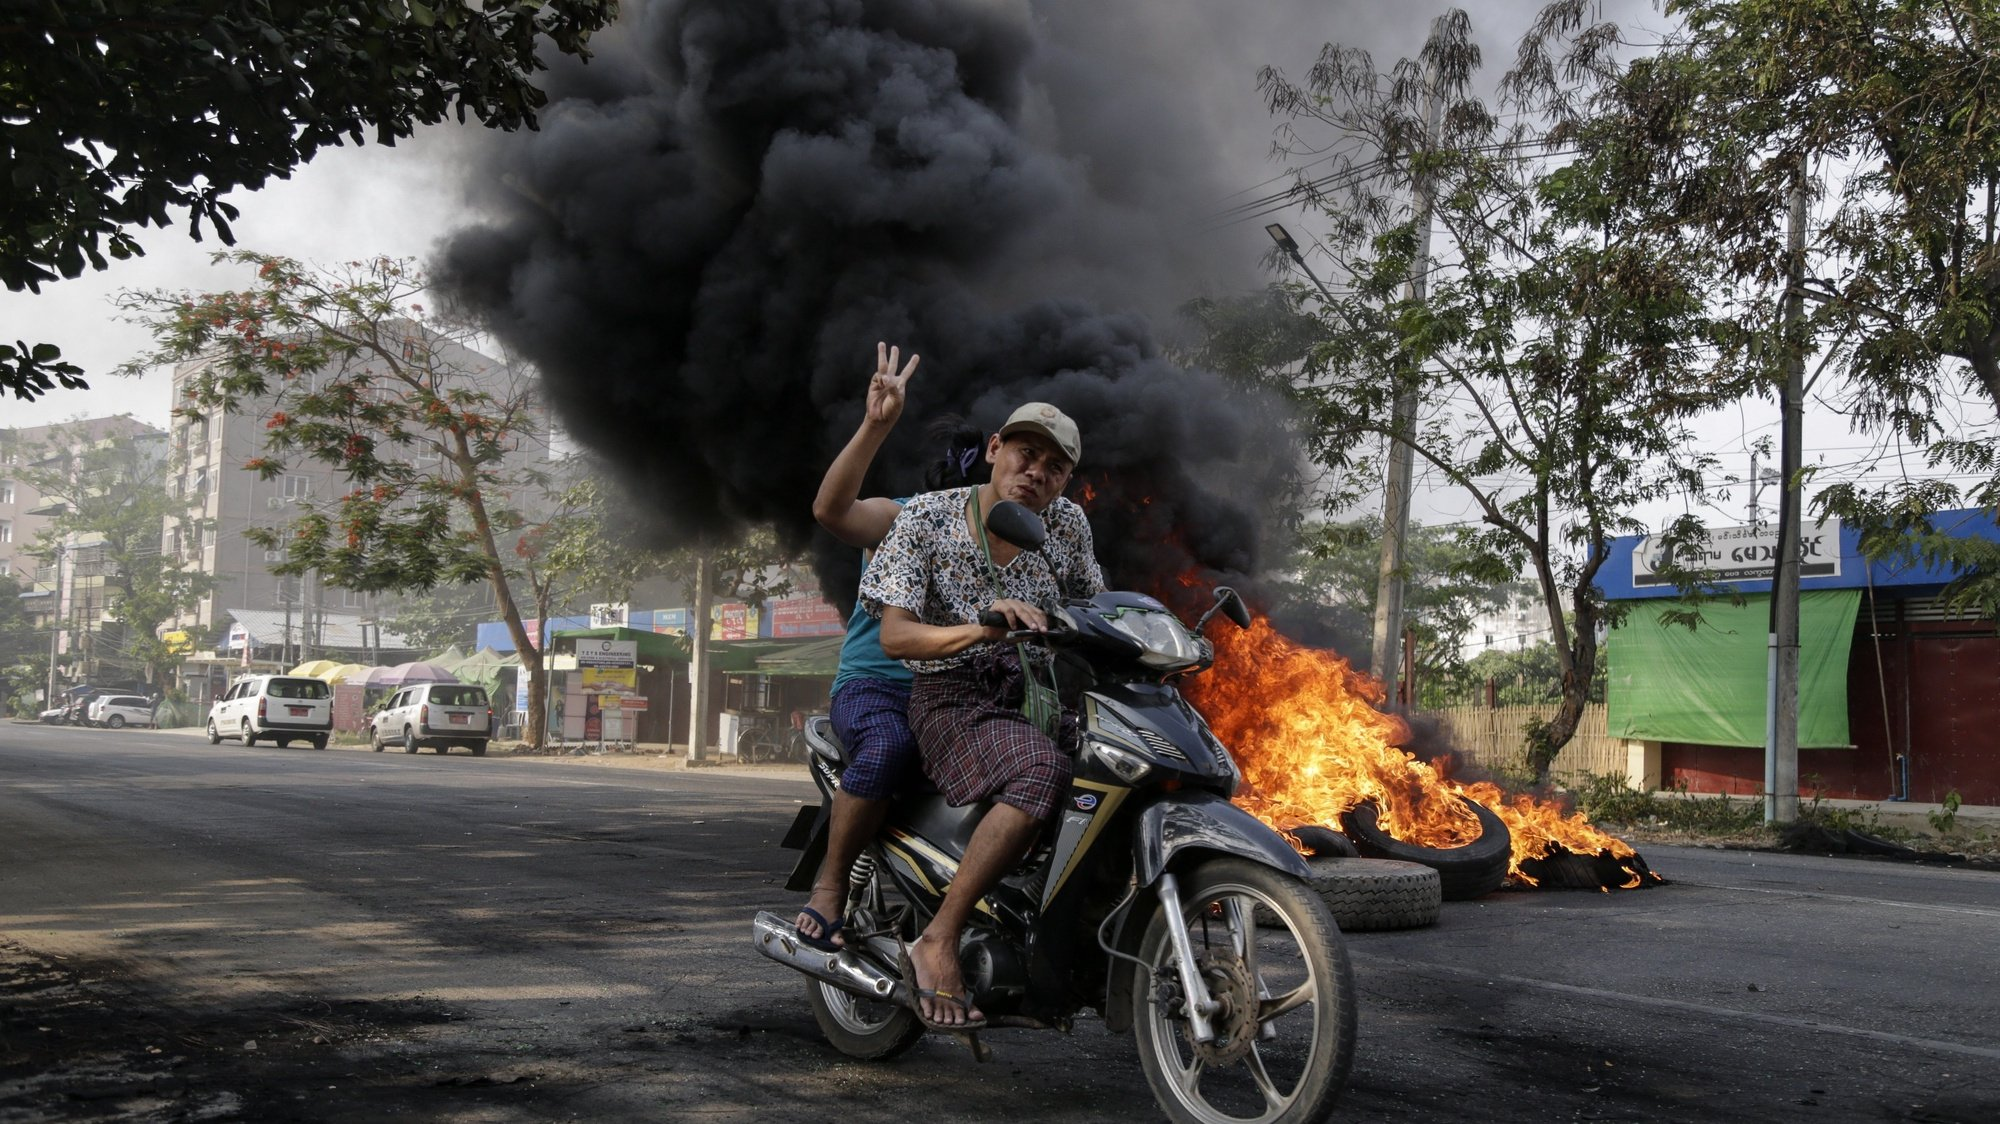 epa09095683 A woman flashes the three-finger salute as as she maneuvers on a motorcycle past burning tires during a protest against the military coup in Yangon, Myanmar, 25 March 2021. Anti-coup protests continued despite the intensifying violent crackdowns on demonstrators by security forces.  EPA/STRINGER